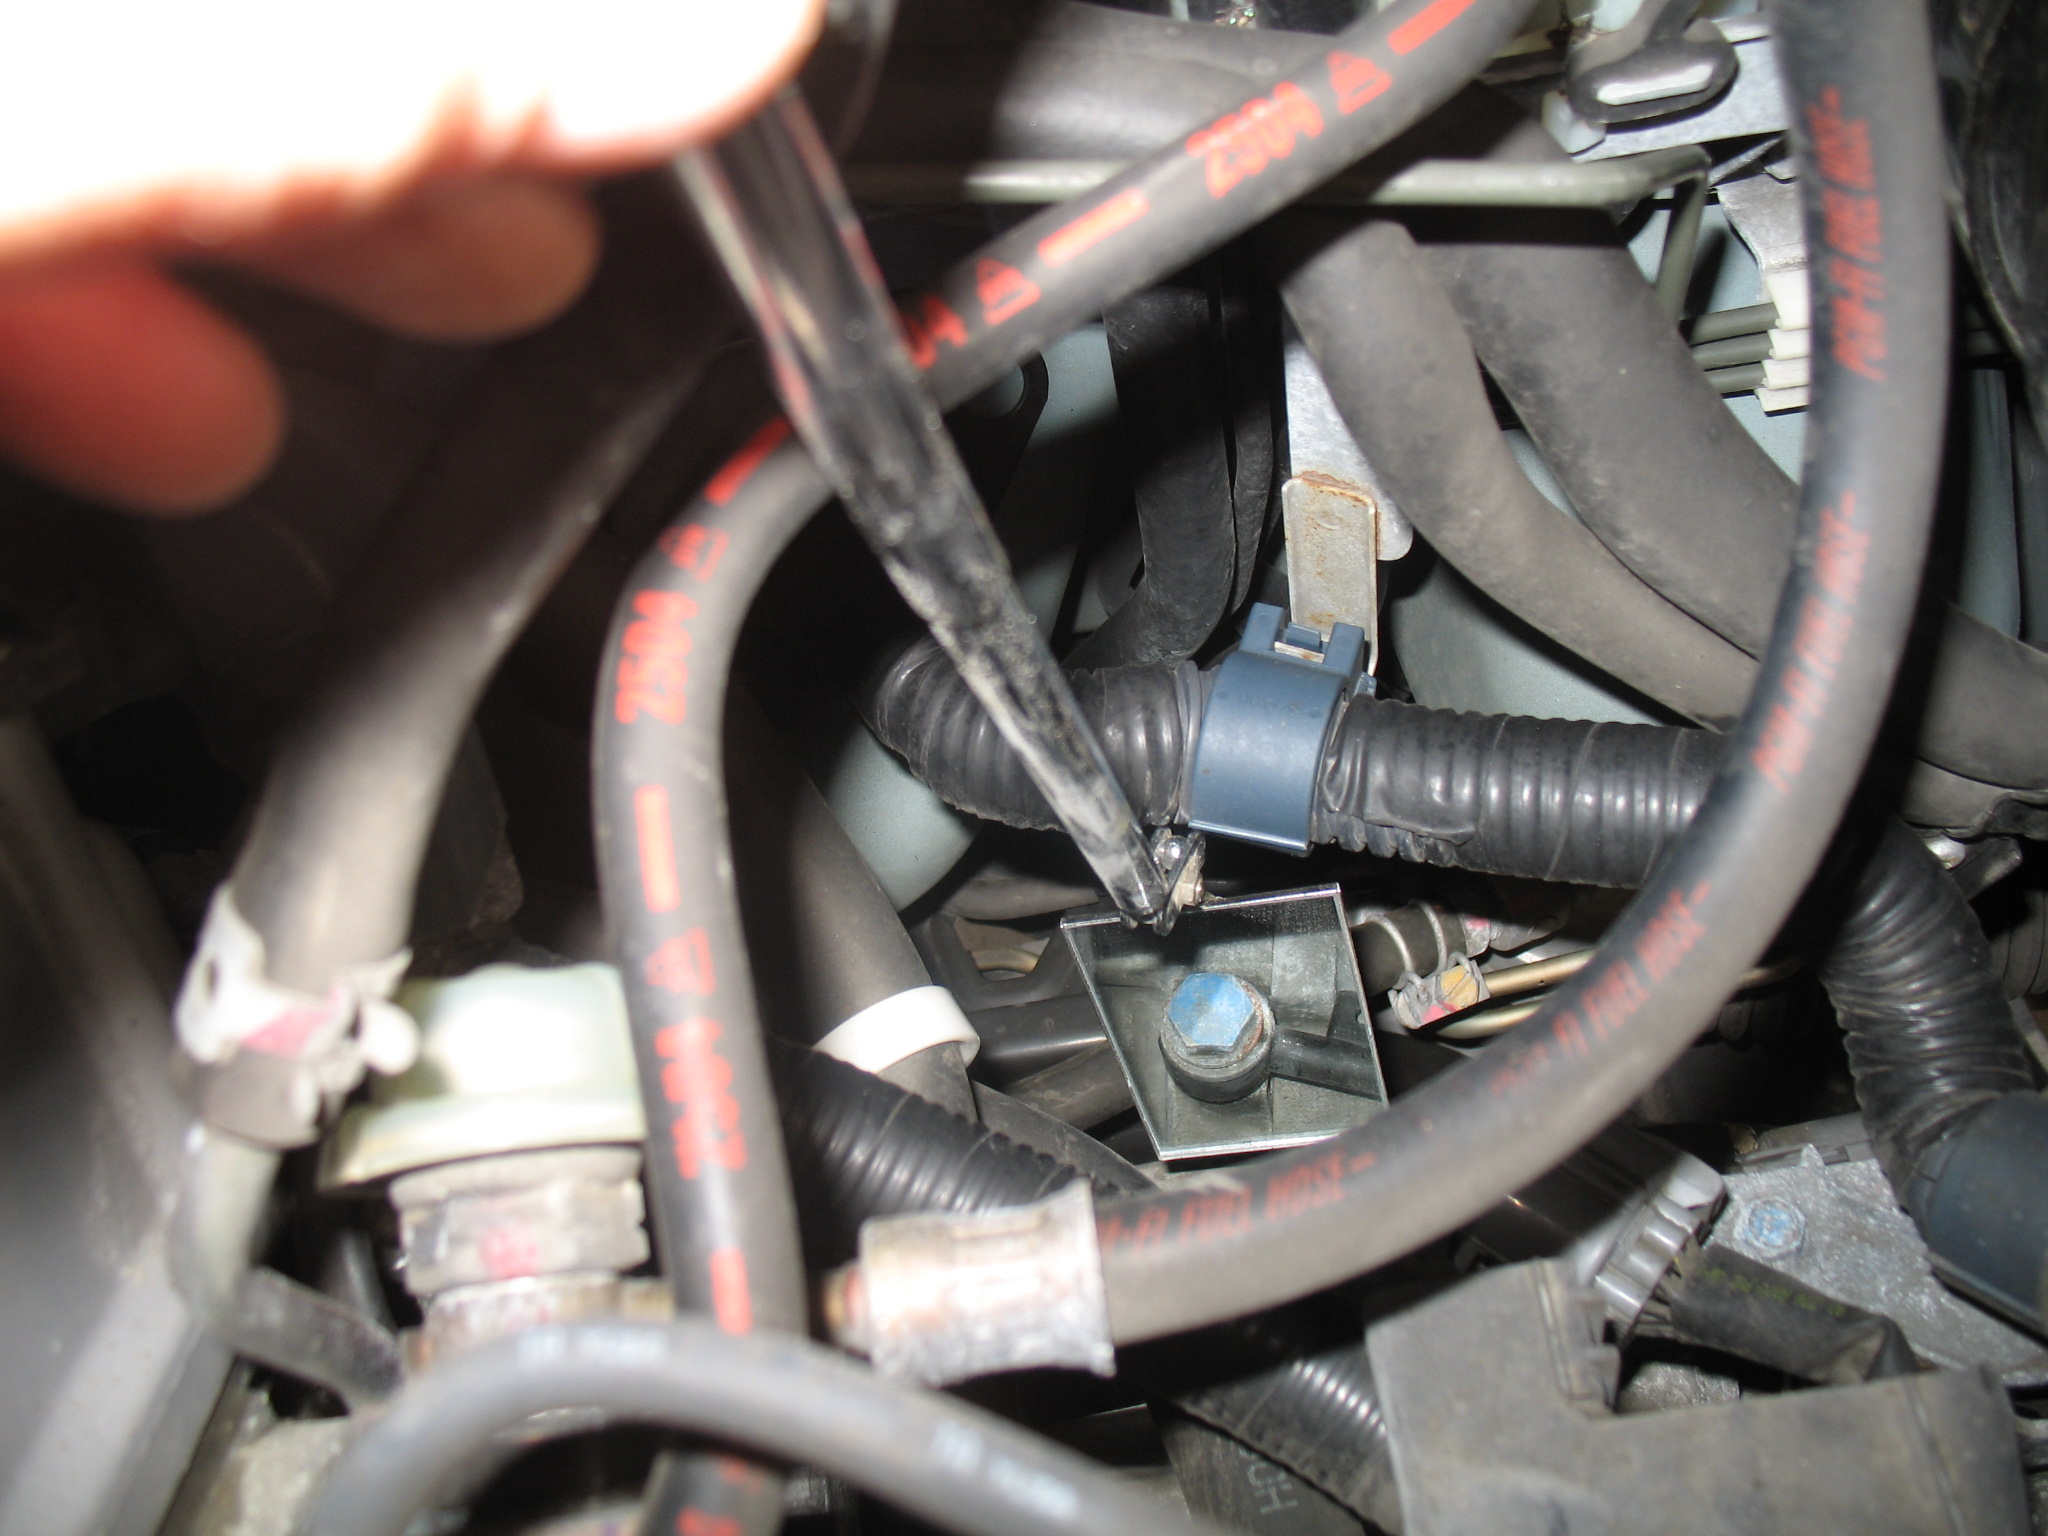 changing my transmission oil-img_4167.jpg